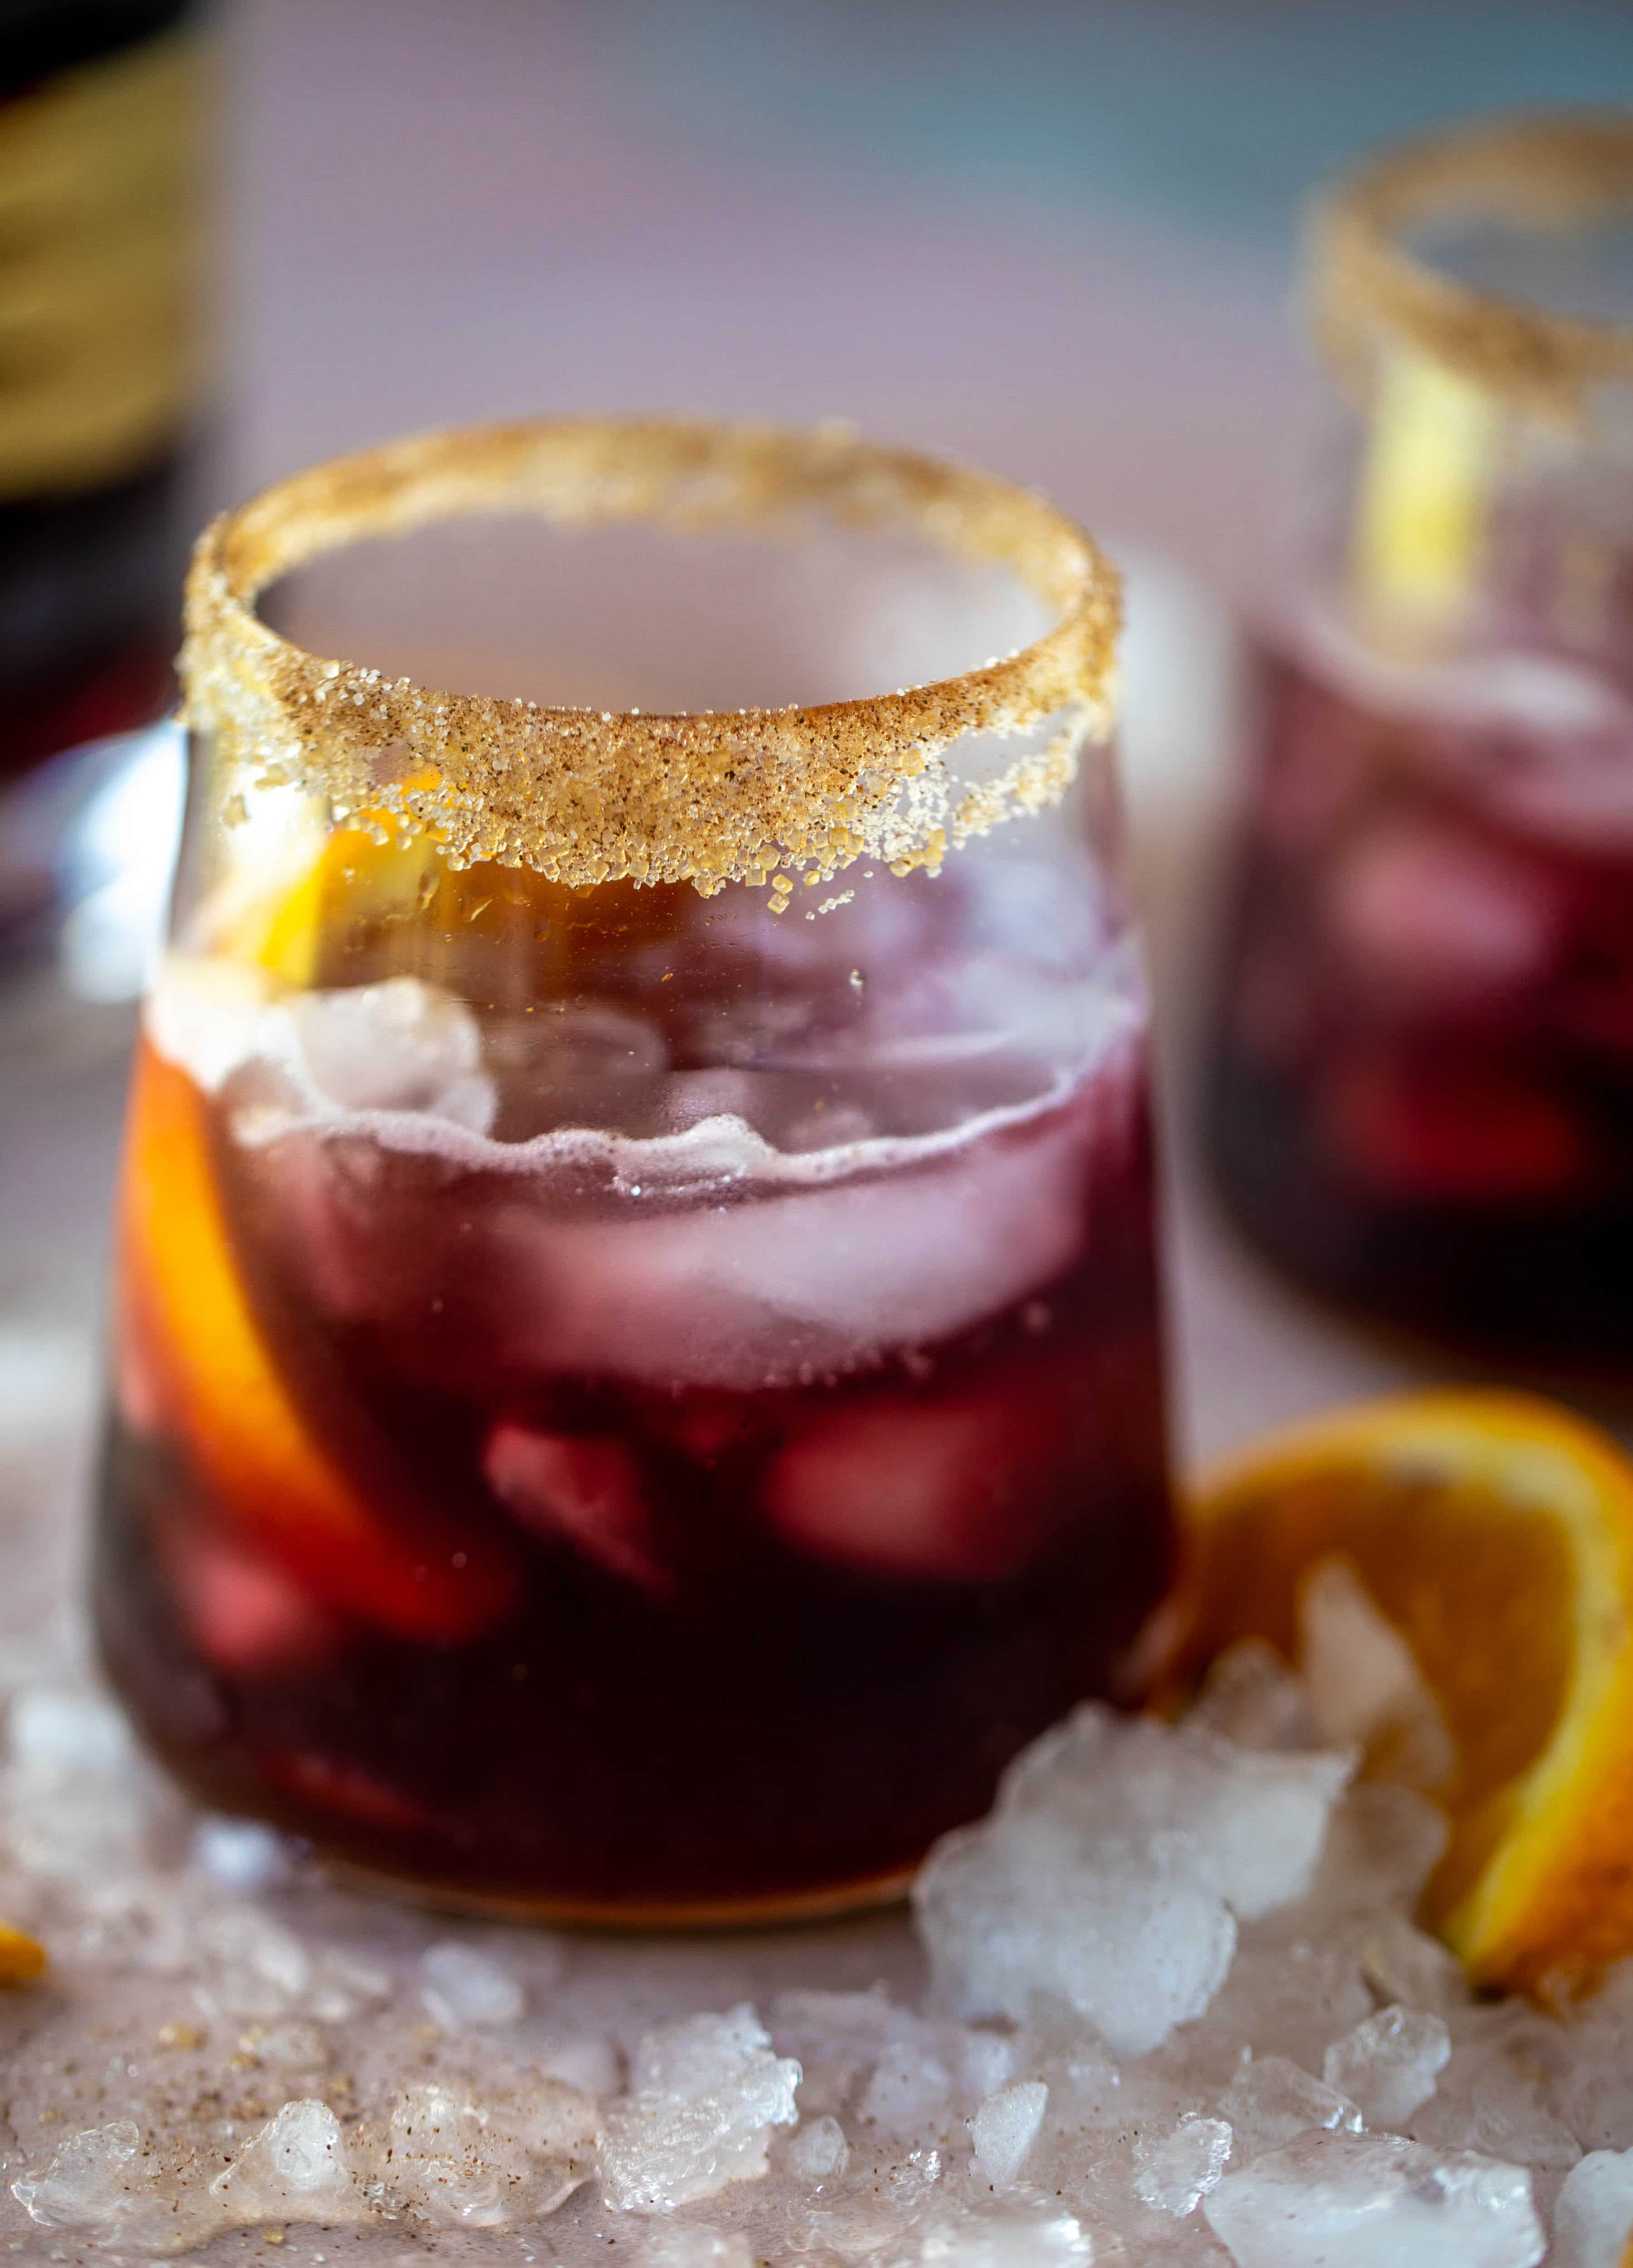 A refreshing and warming lambrusco smash, made with bubbly red wine, bourbon, orange soda and maple syrup. Tastes like the holidays!